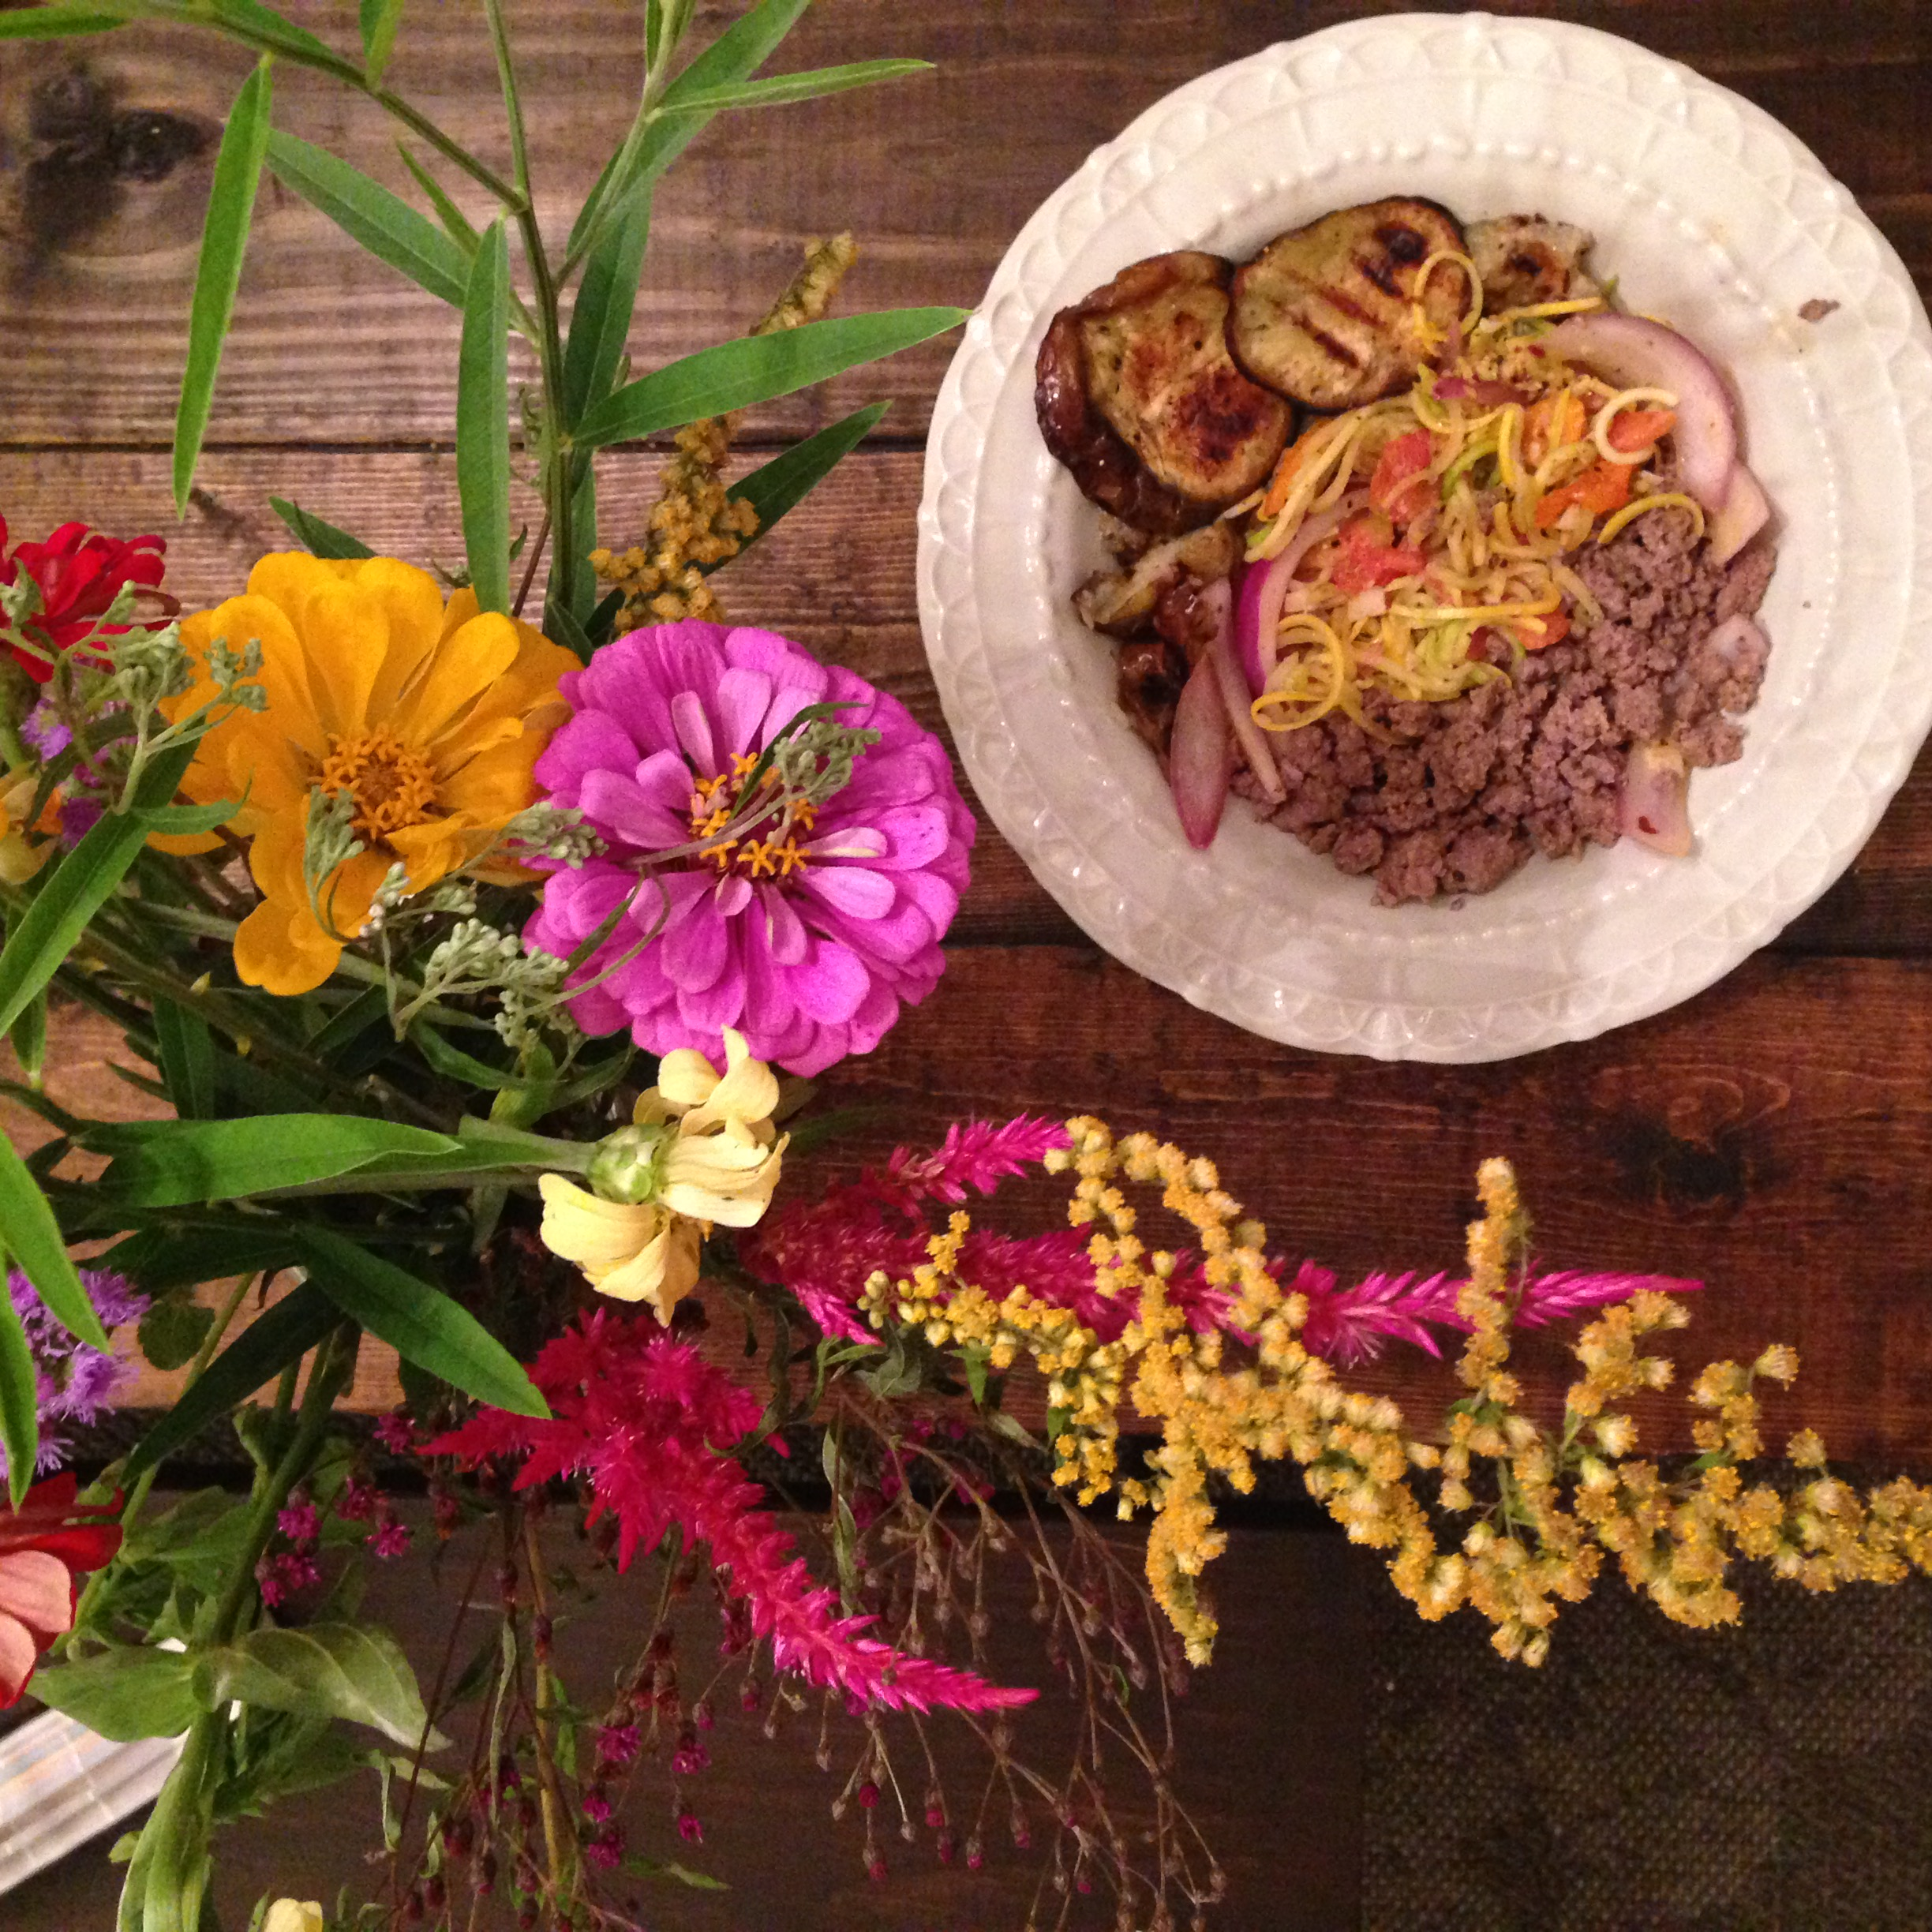 The Hepzibah Flower CSA + my poorly photographed veggie box meal.